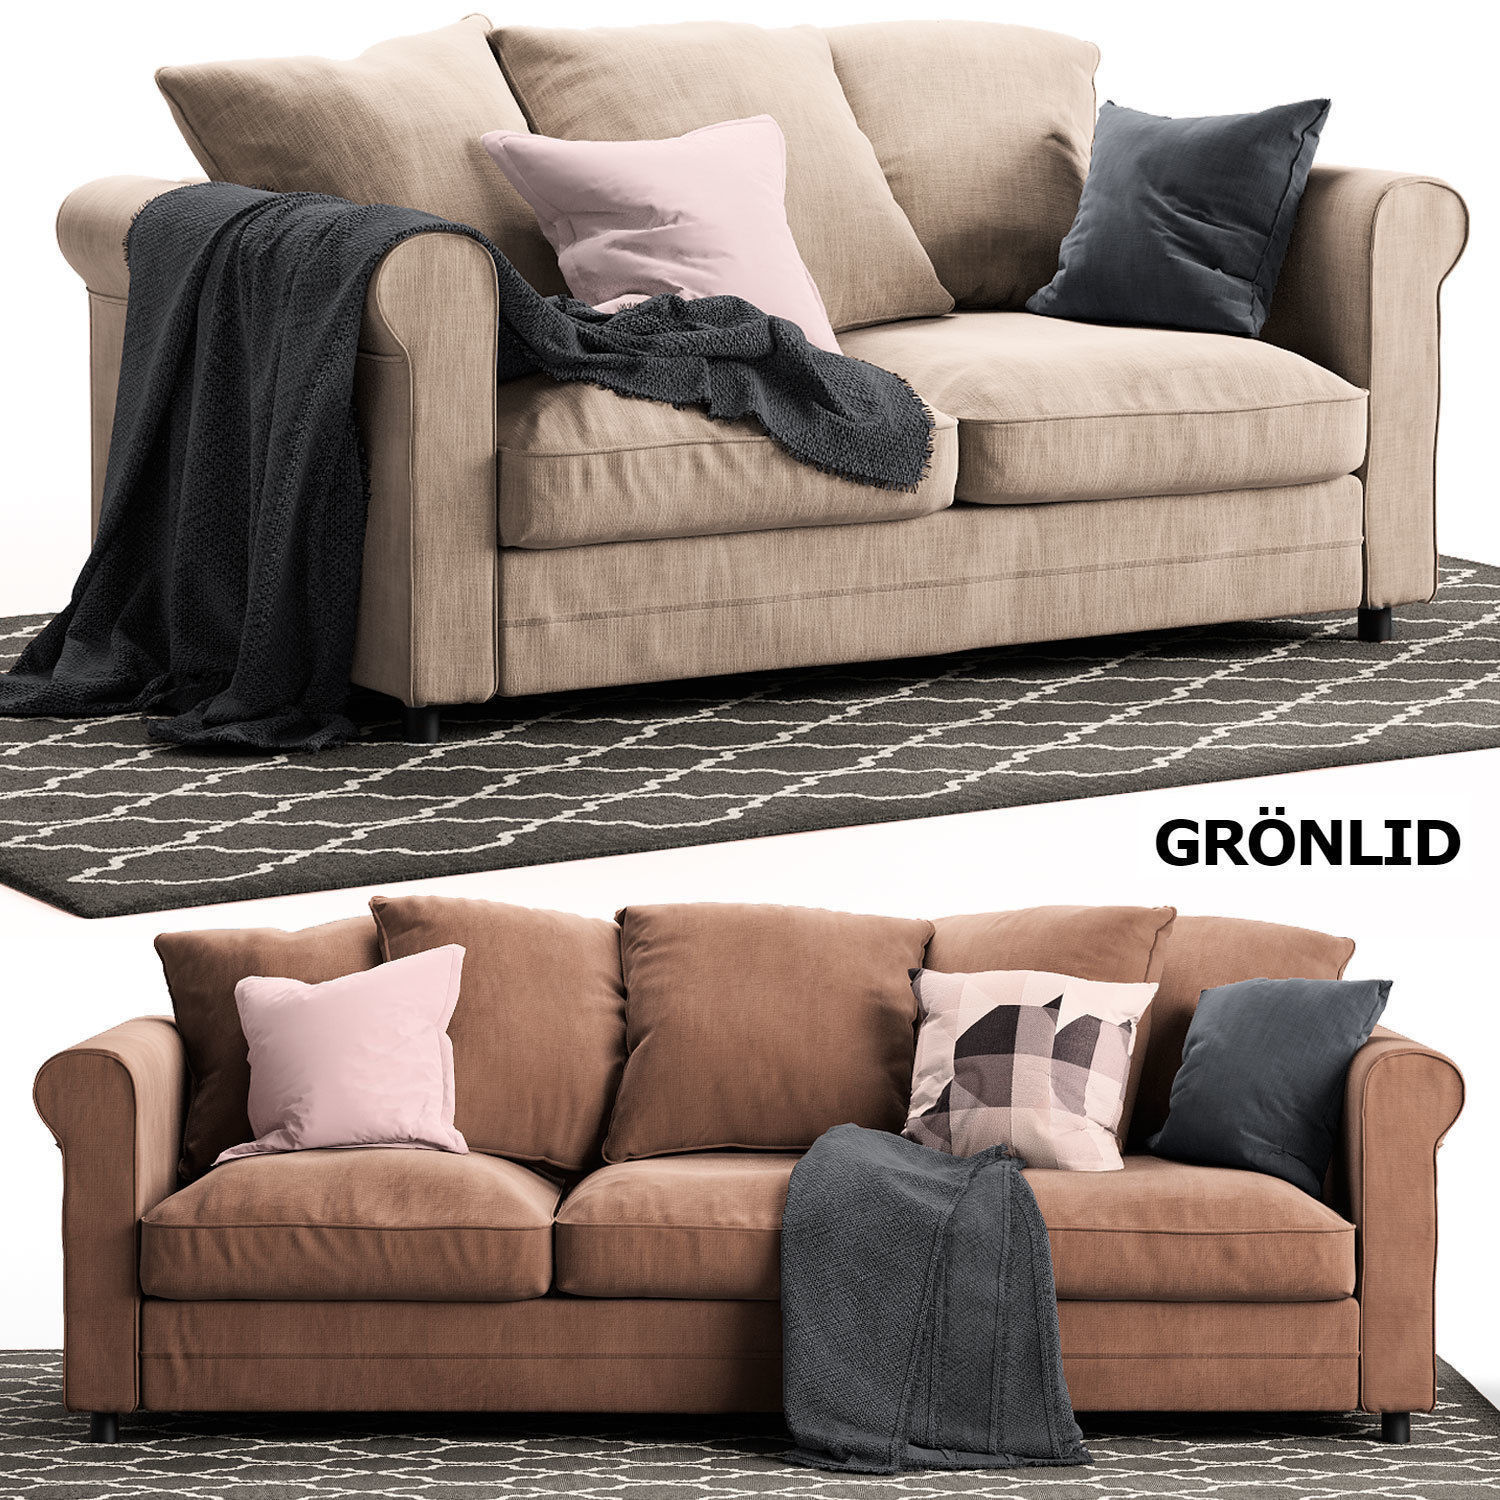 Incredible 2 Sofas Gronlid Ikea 3D Model Caraccident5 Cool Chair Designs And Ideas Caraccident5Info